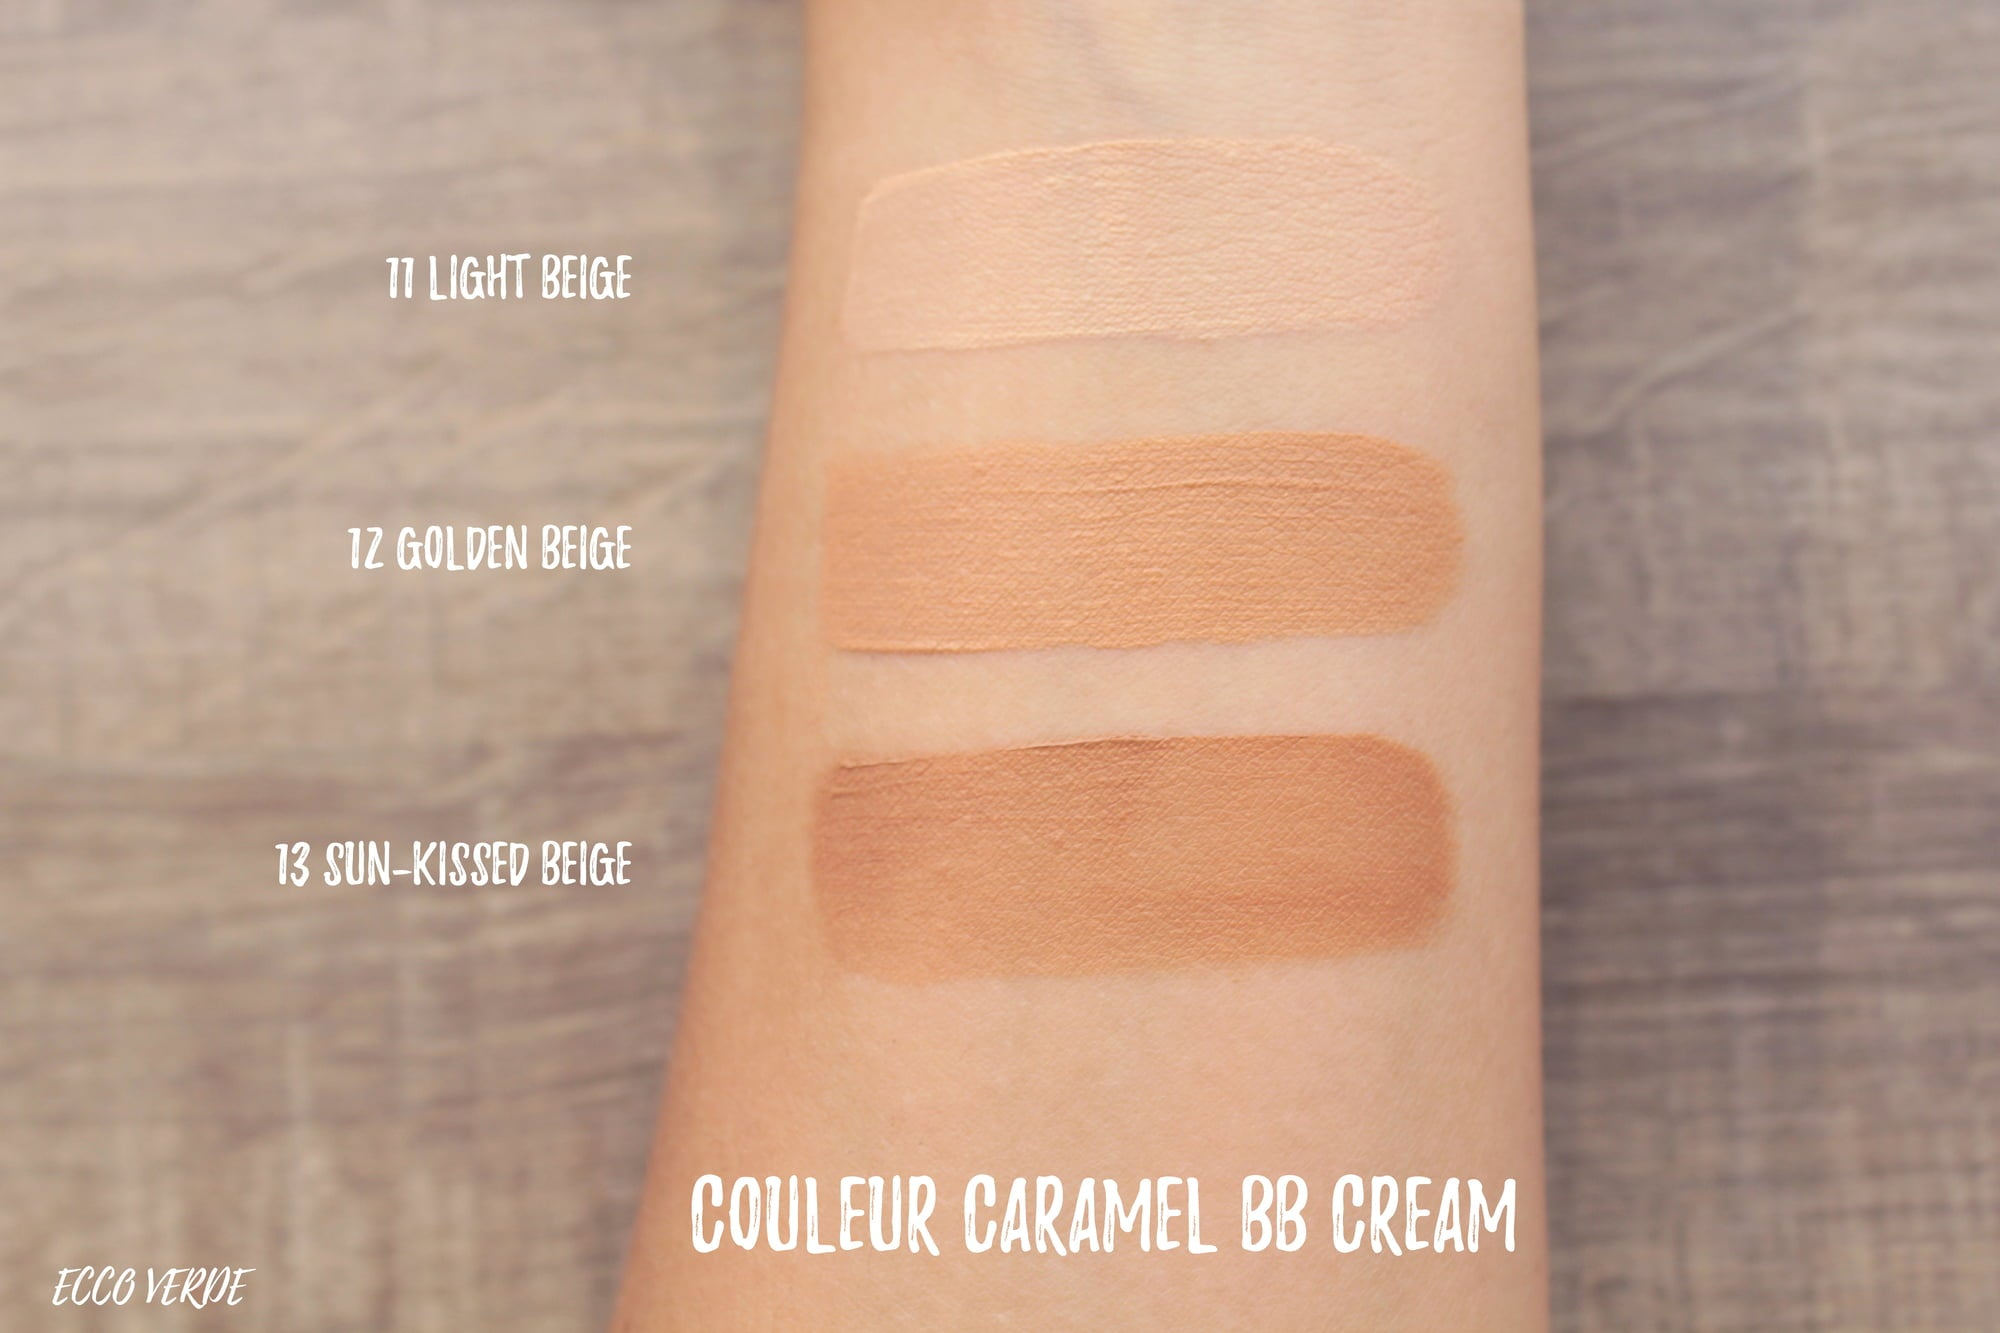 BB Cream Vegana Base de Maquillaje - Couleur Caramel